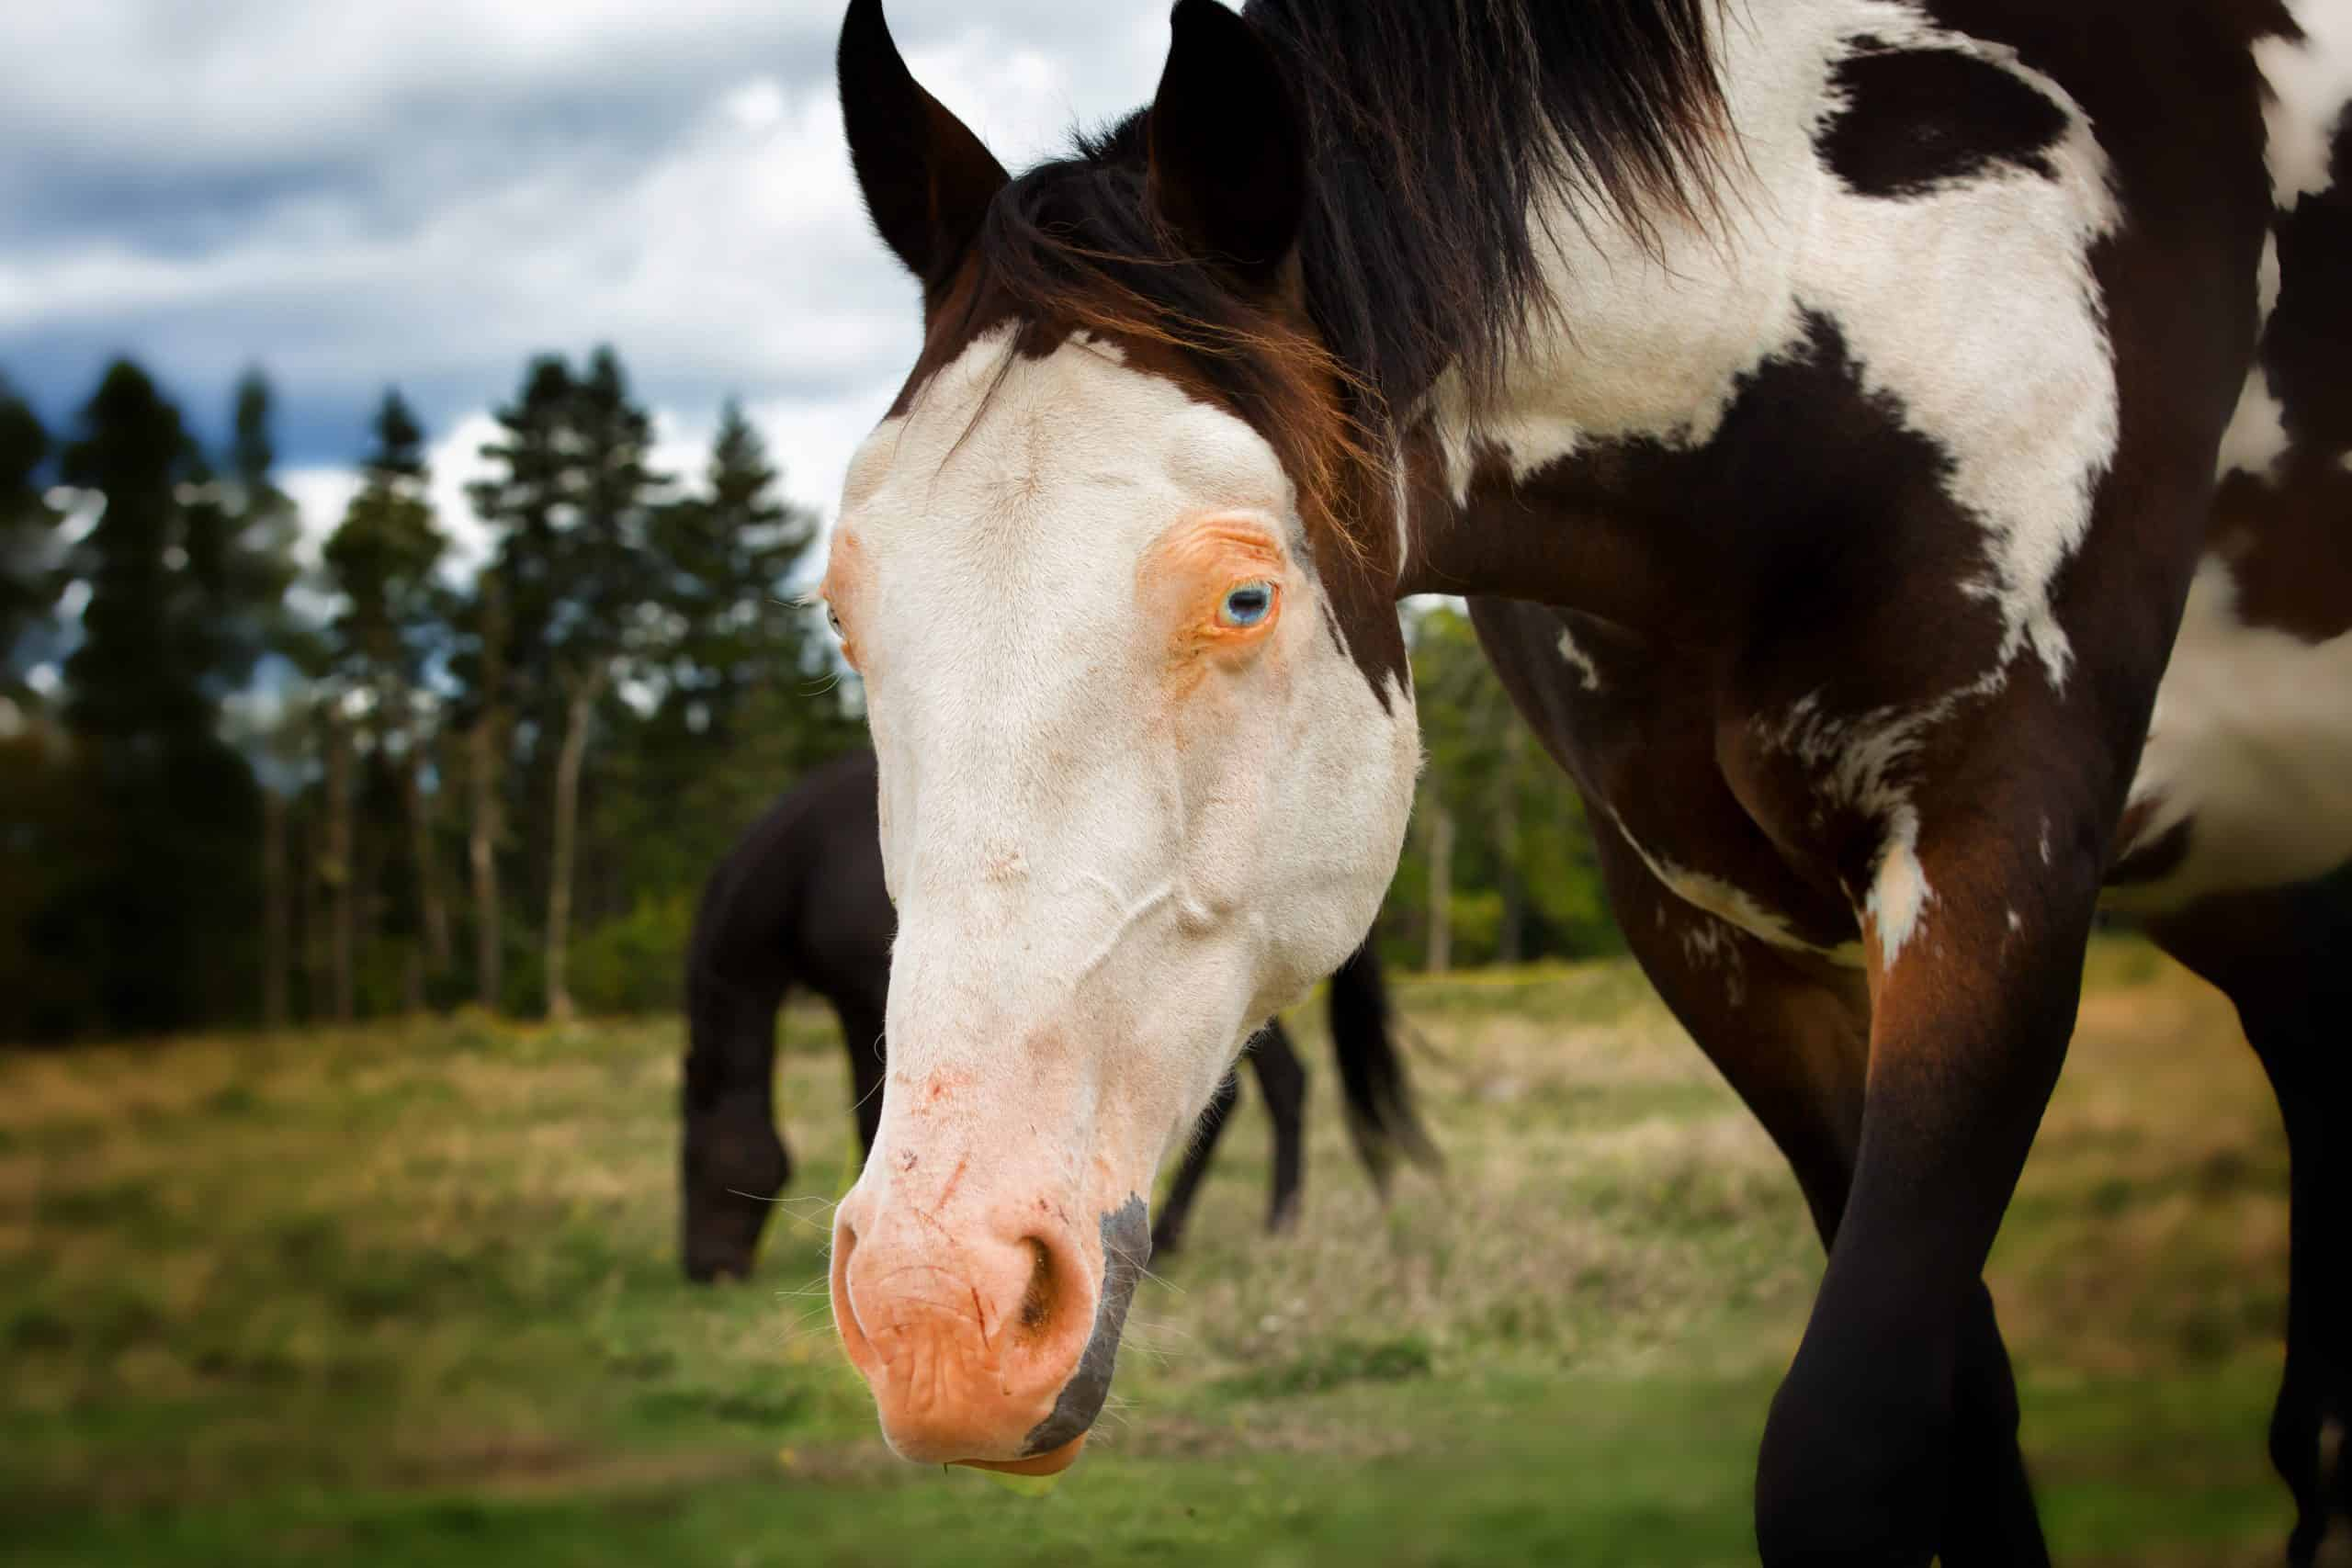 Beautiful horse with white face, pink nose and blue eye.